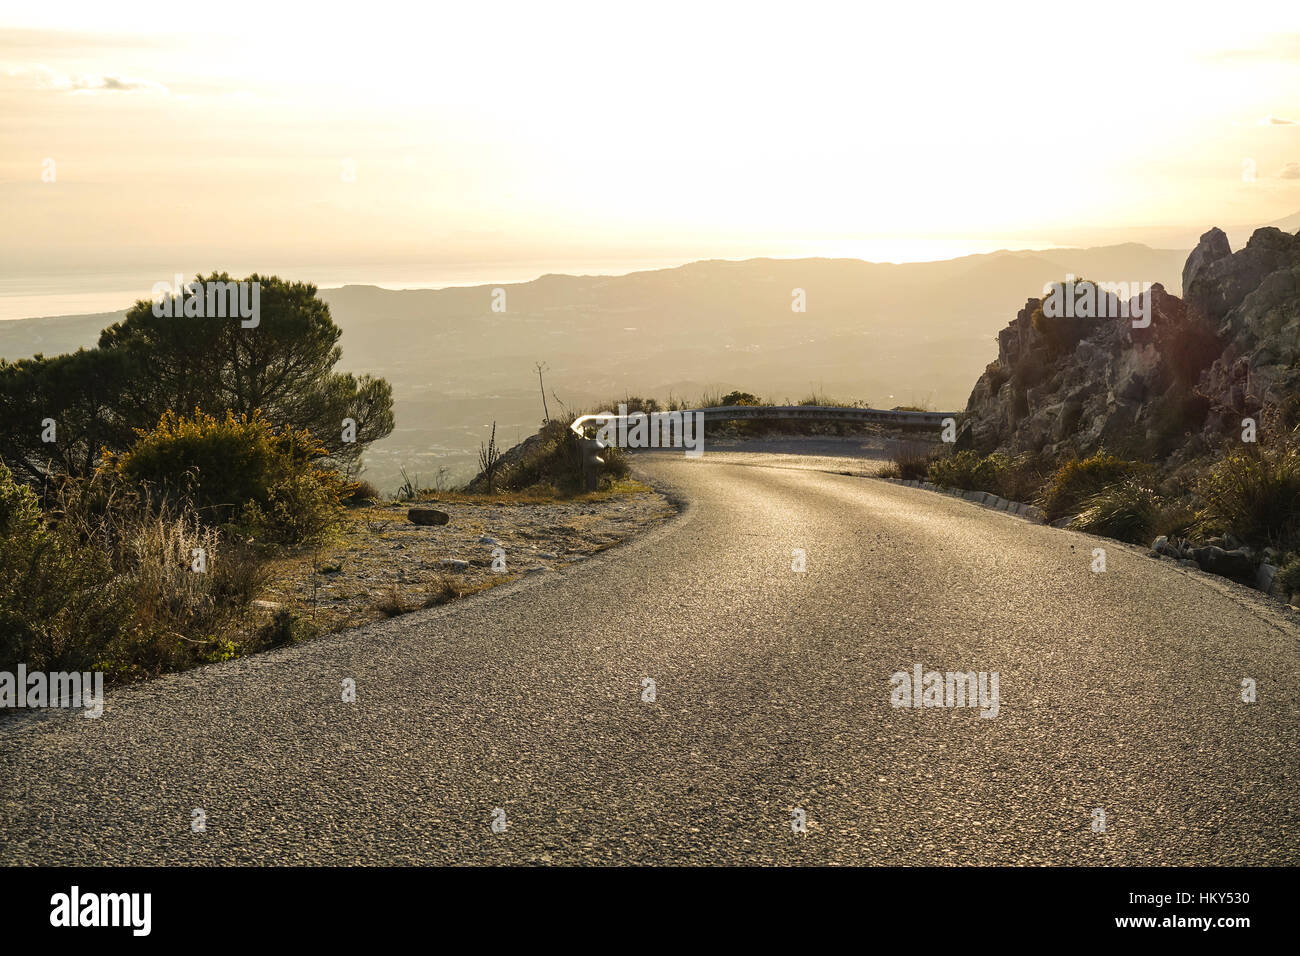 Empty winding road in mountains of southern Spain. - Stock Image